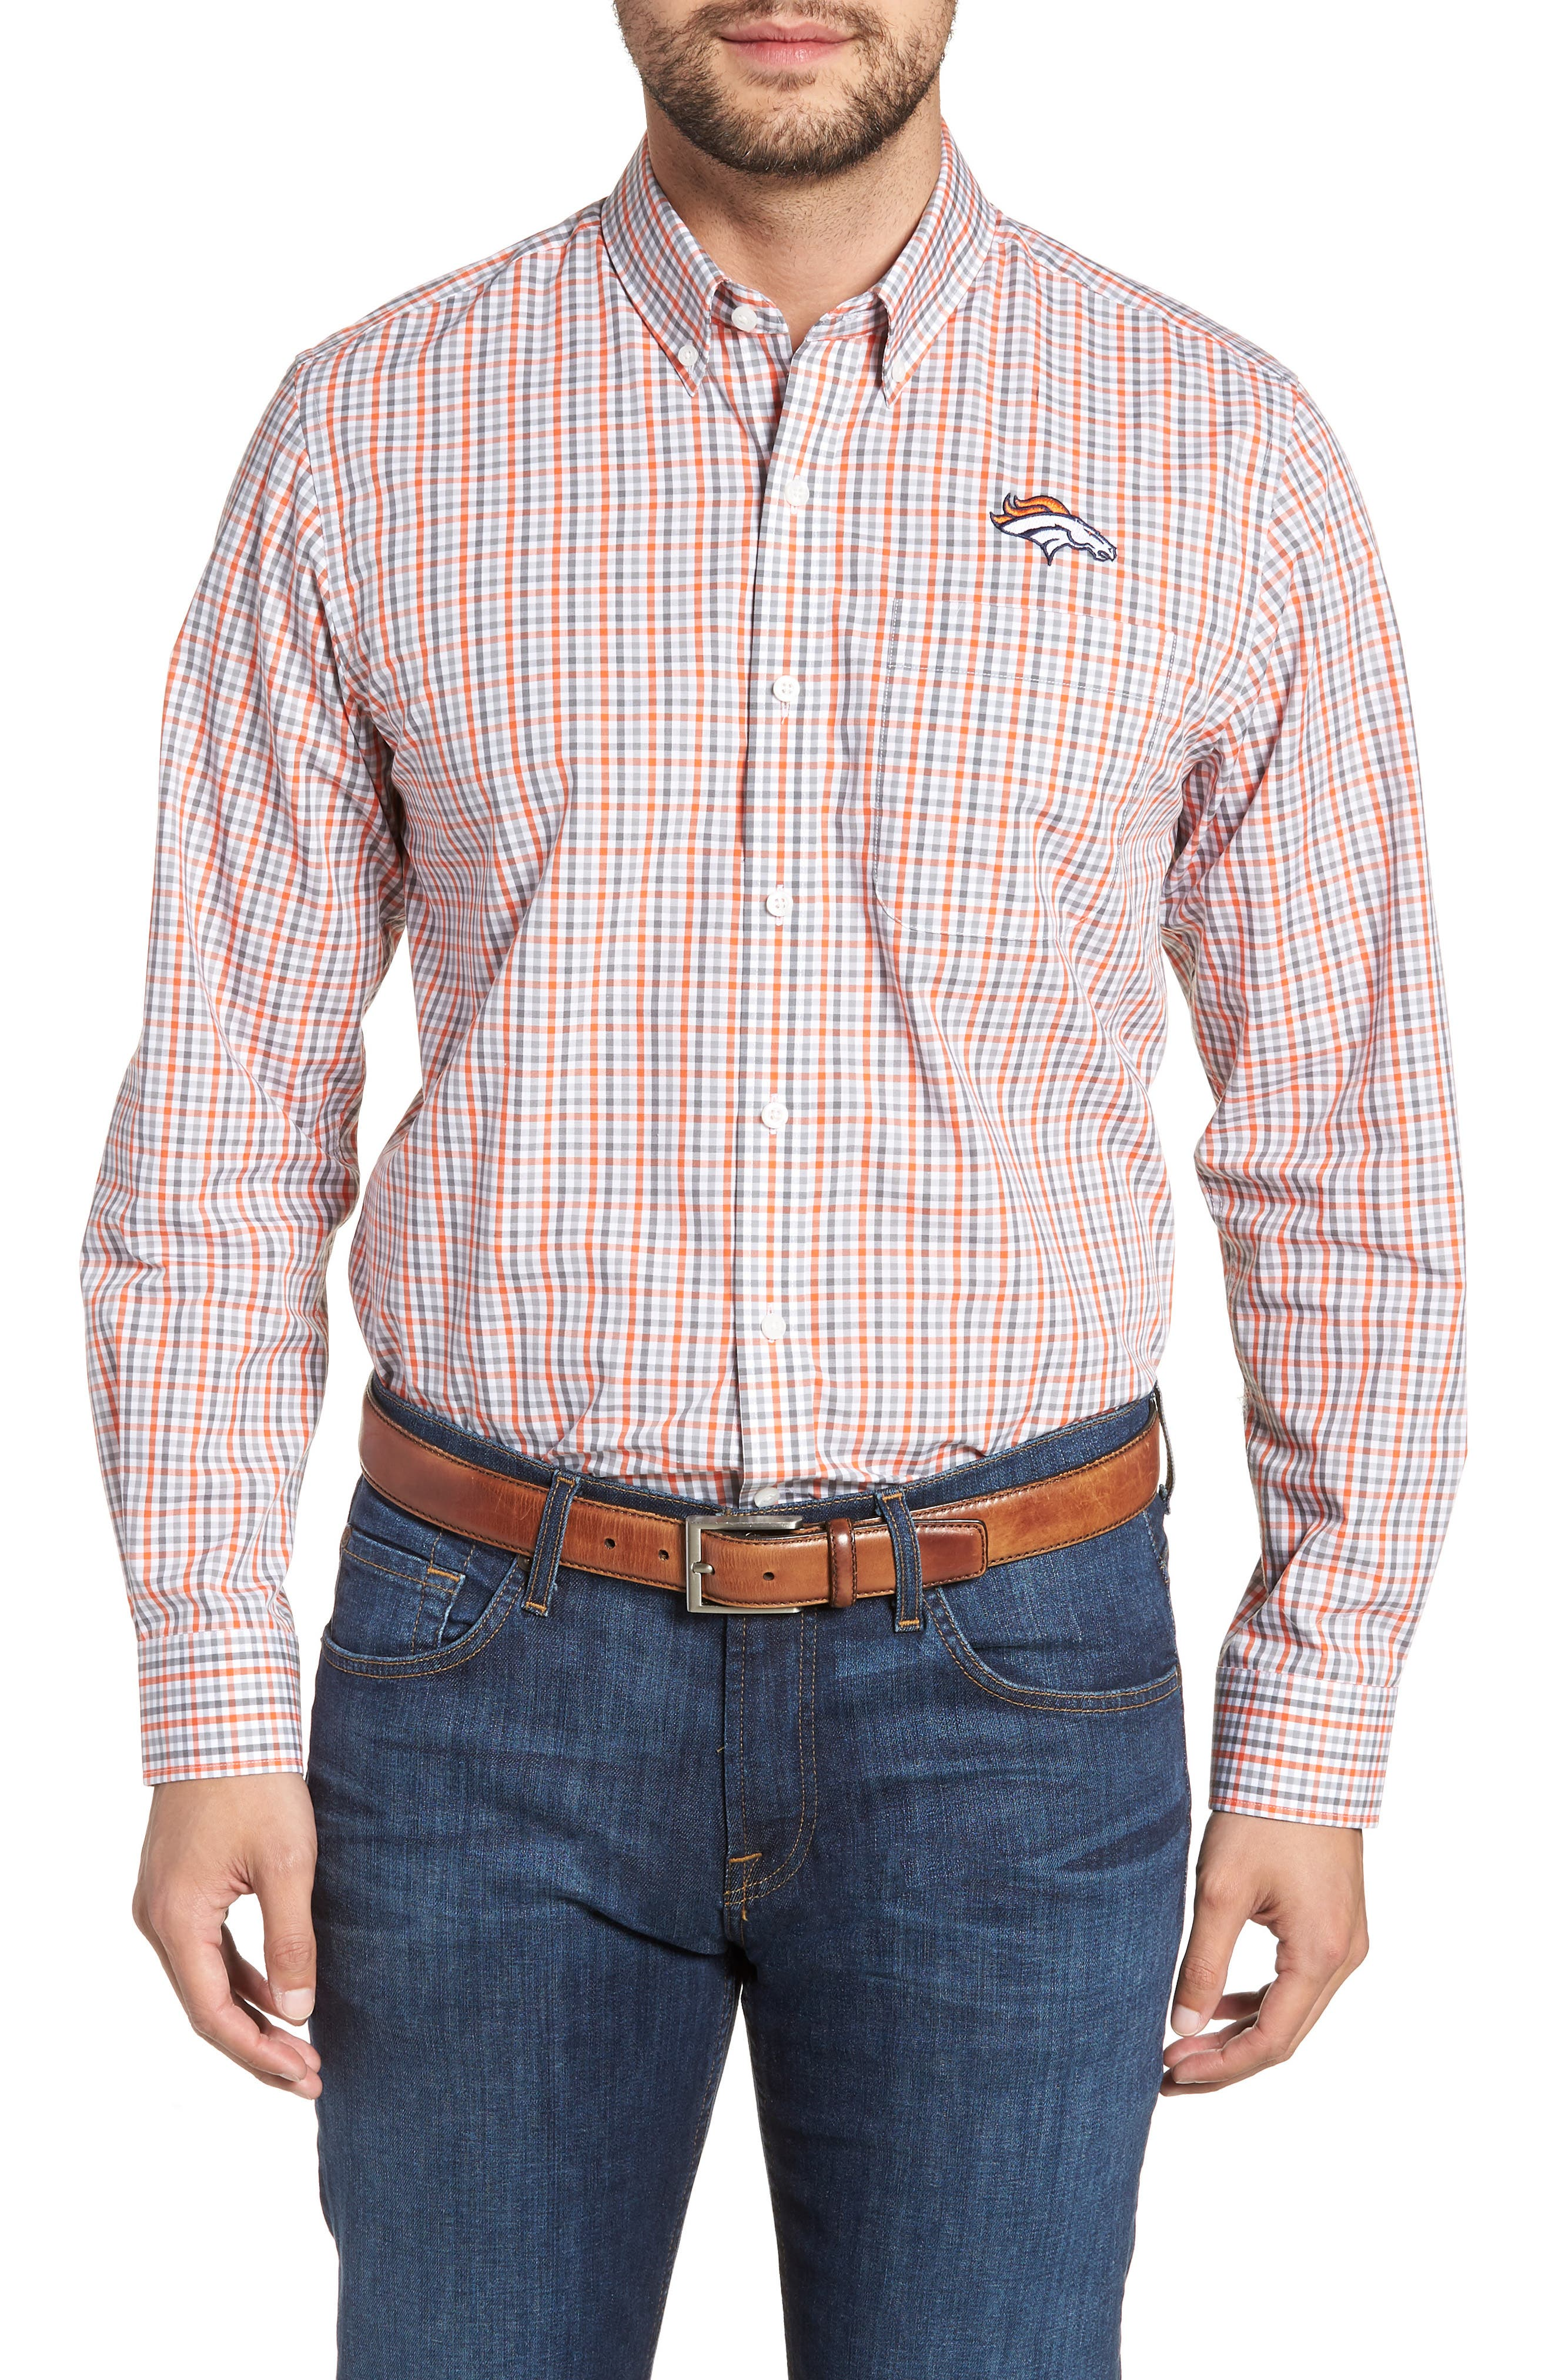 Denver Broncos - Gilman Regular Fit Plaid Sport Shirt,                         Main,                         color, COLLEGE ORANGE